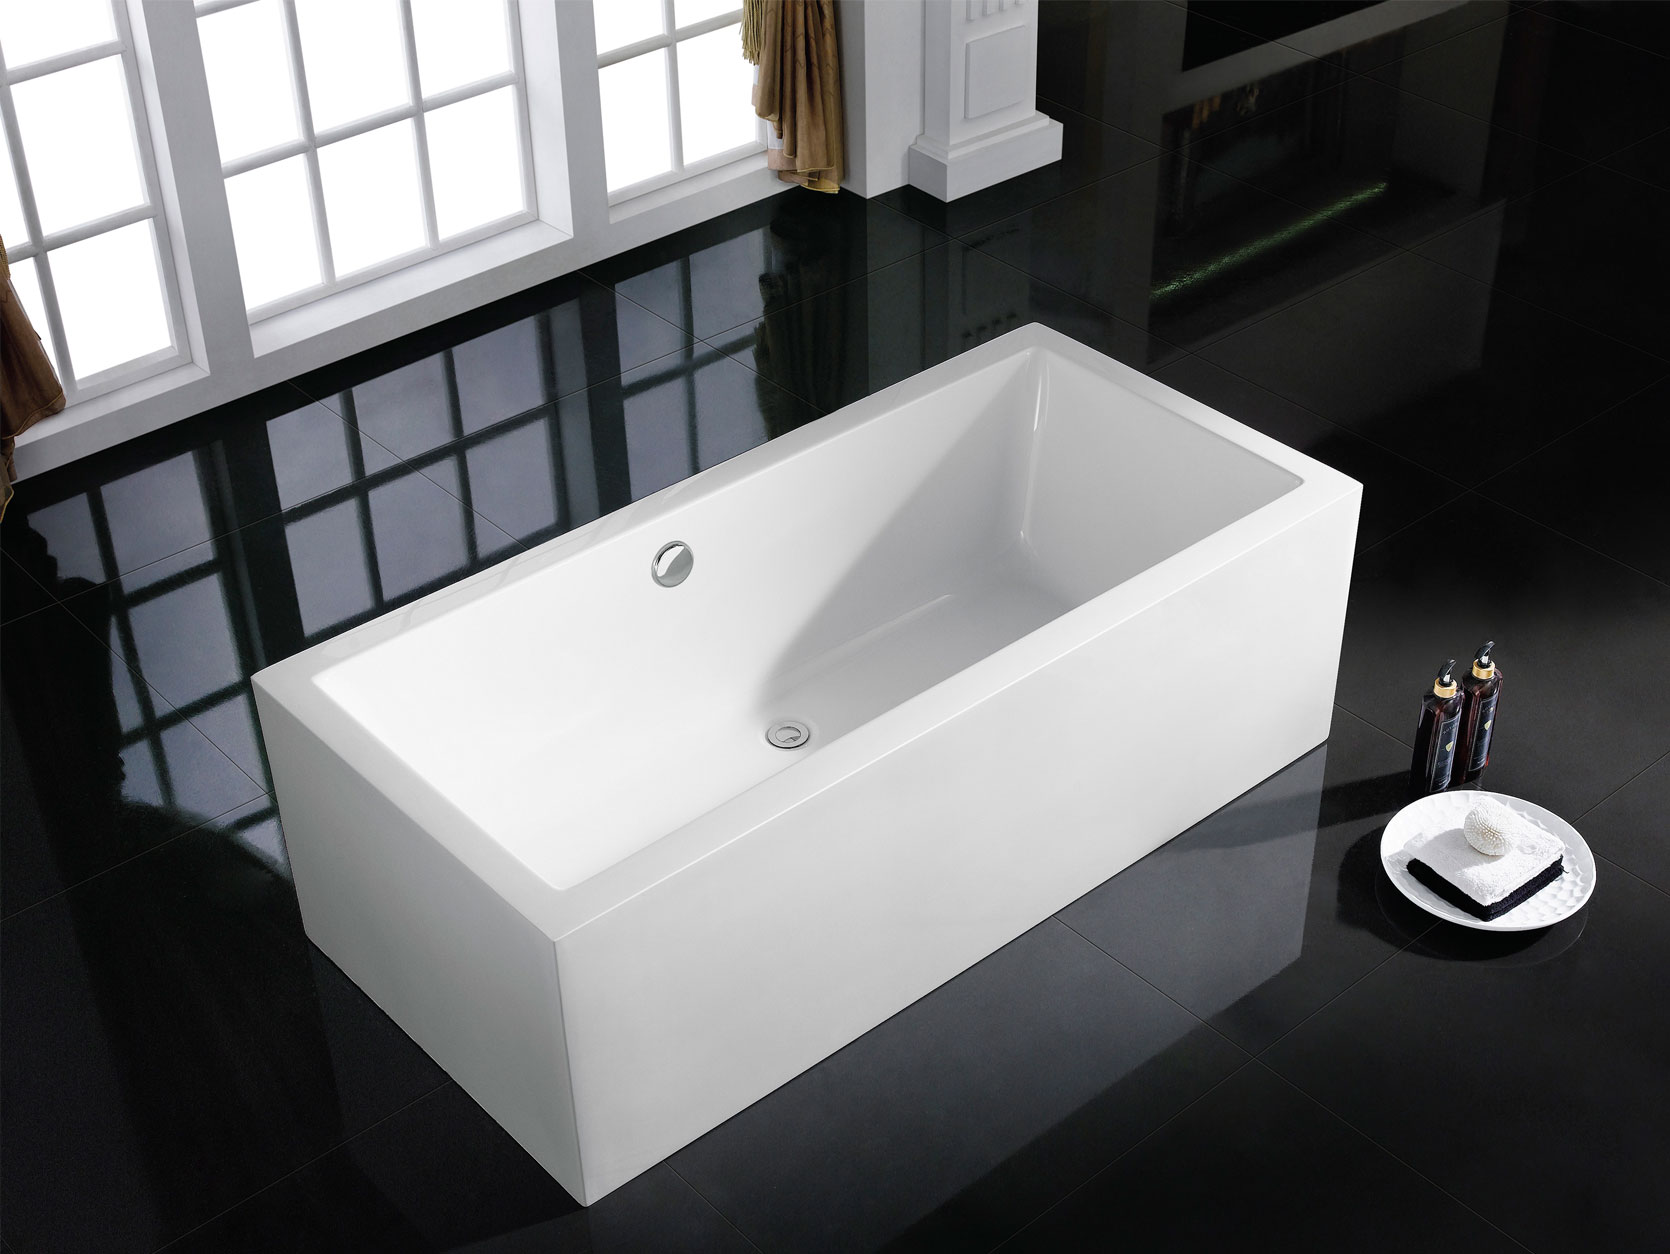 Rectangular Bathtubs USA : Blissbathandkitchen.com